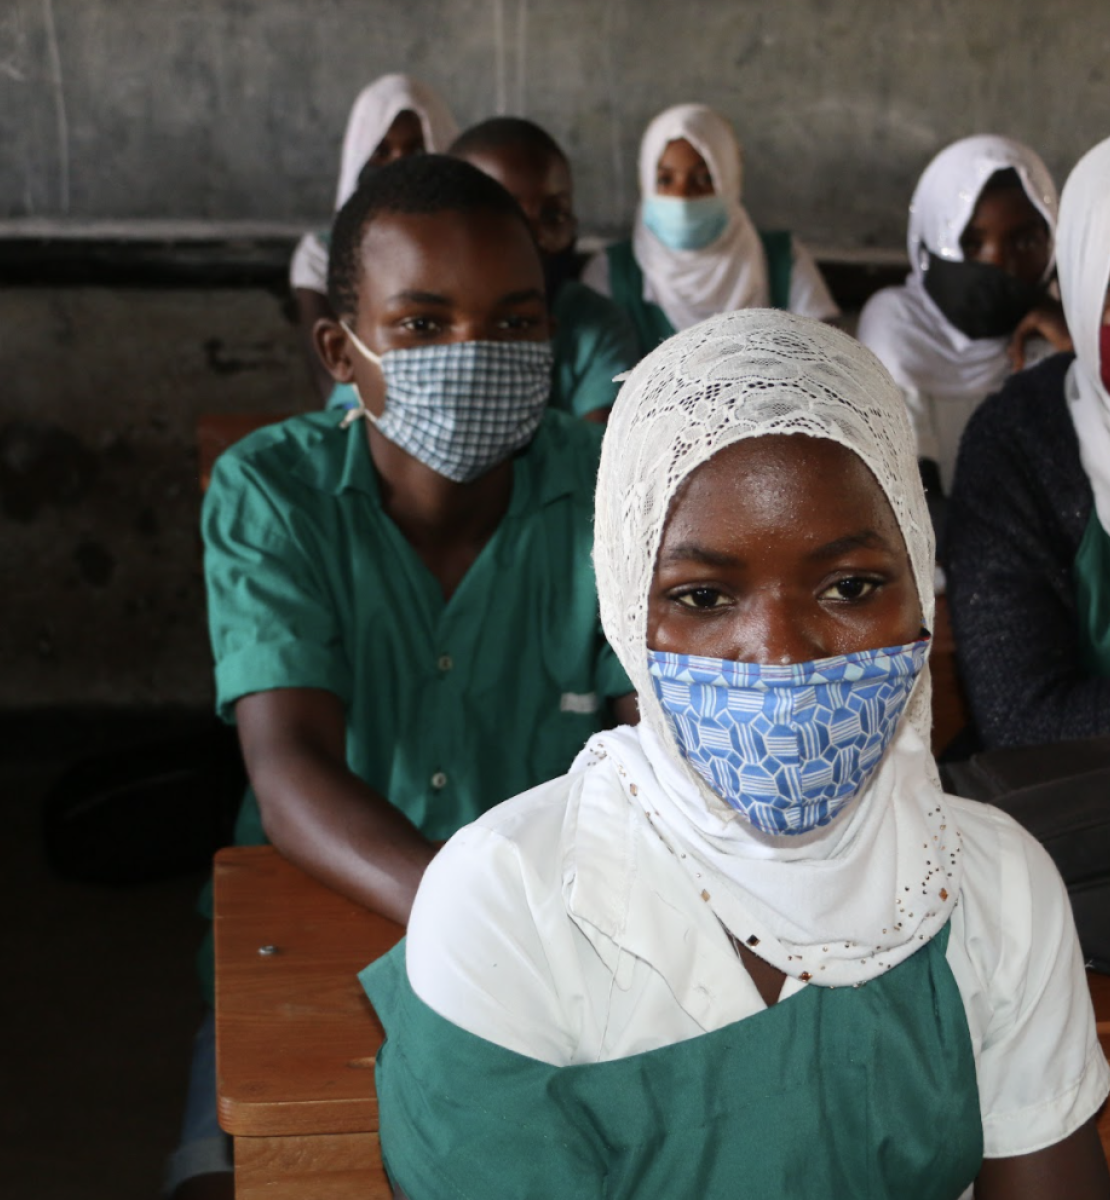 A group of children in school uniforms and masks sit in a classroom facing forward.